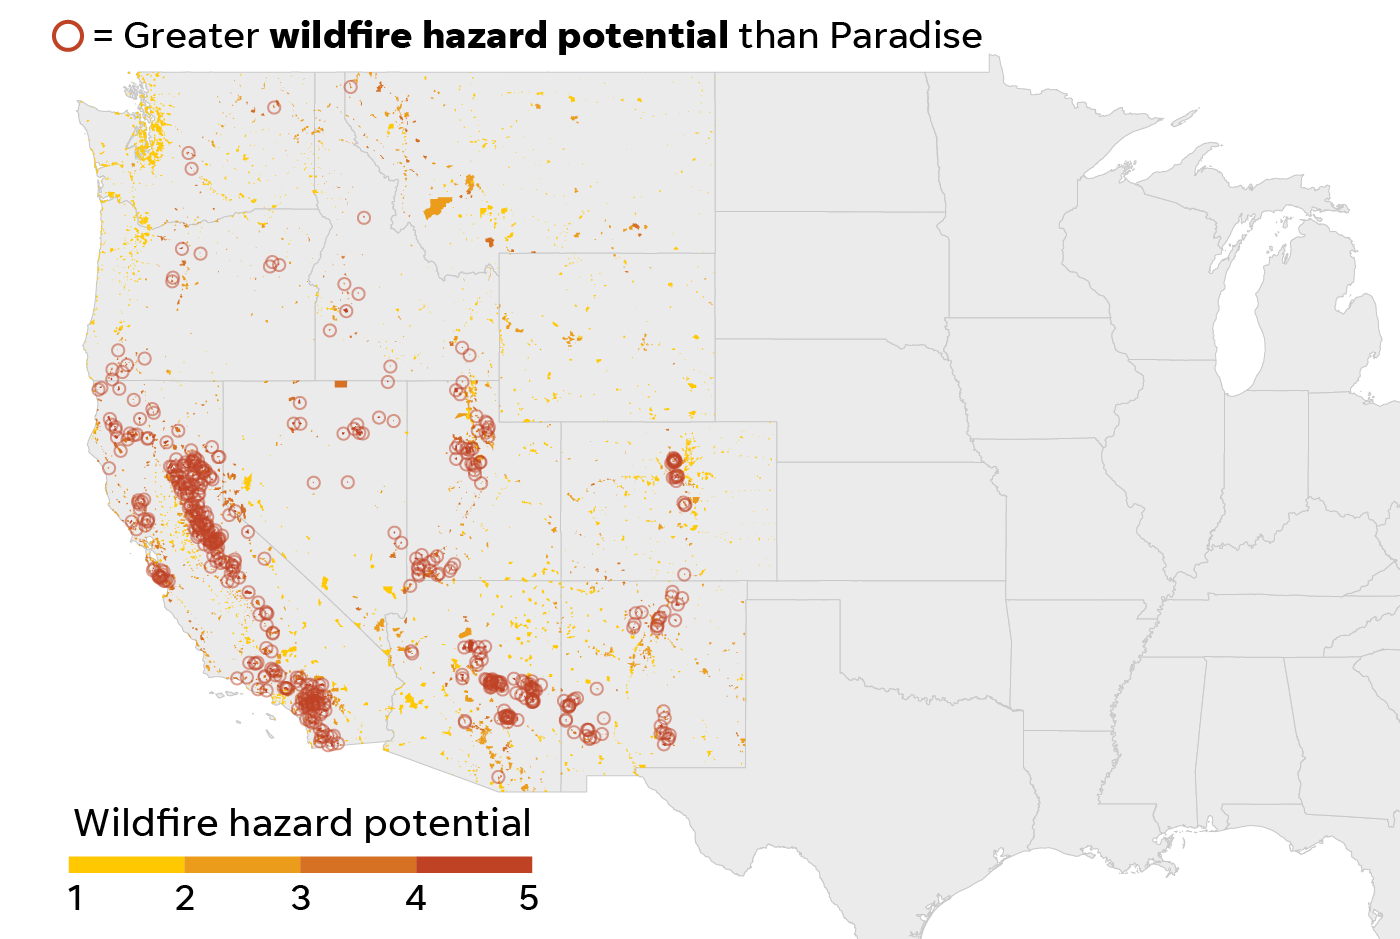 Places with a wildfire hazard score greater than Paradise, Calif.